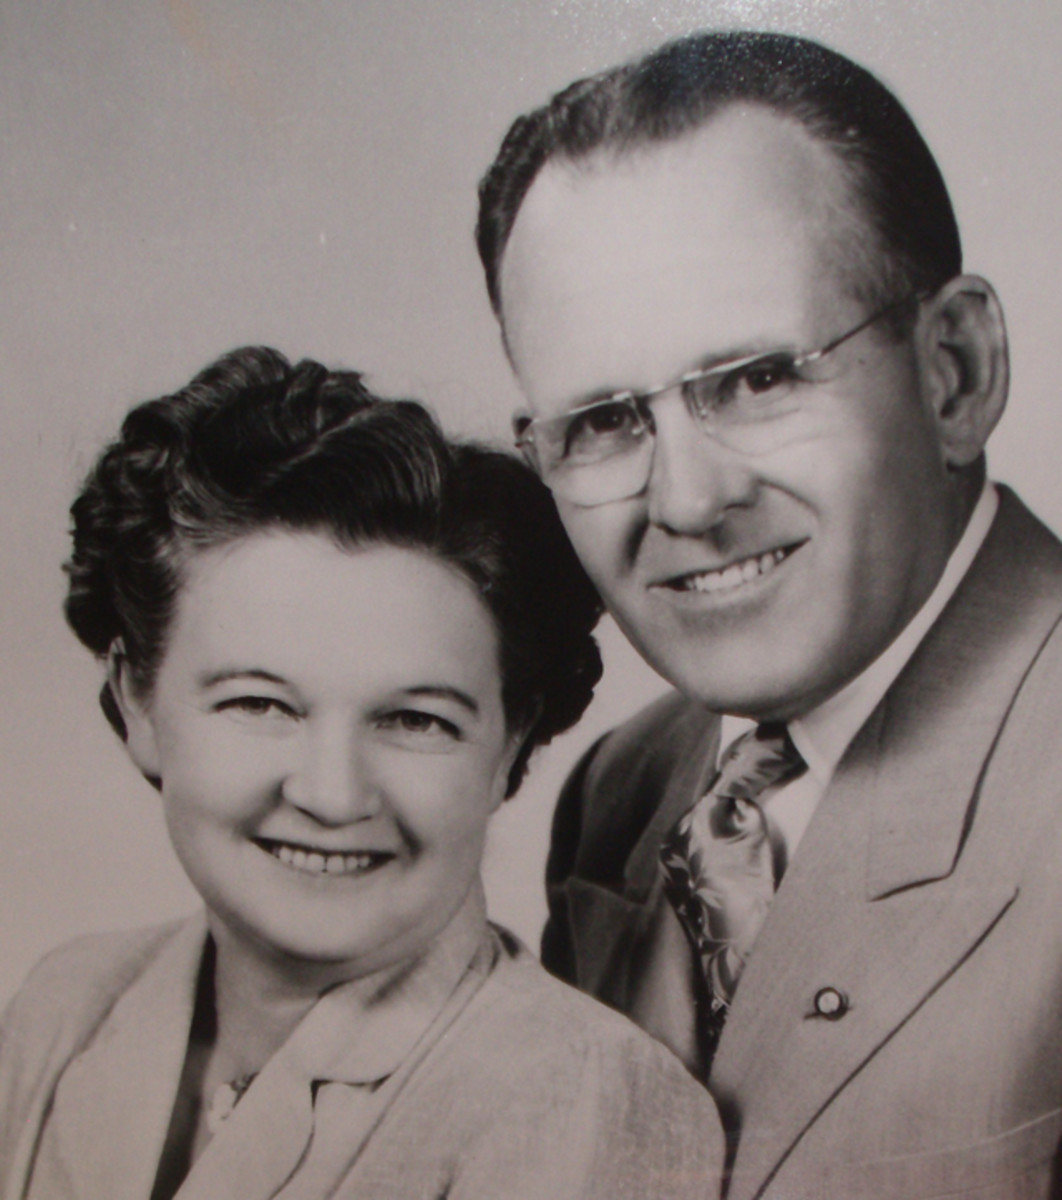 J.D. Forney and his wife Rachel. In 1961, the Forney Transportation Museum was incorporated as a non-profit charitable organization to house an astounding assembly of transportation devices J.D. accumulated over the years.